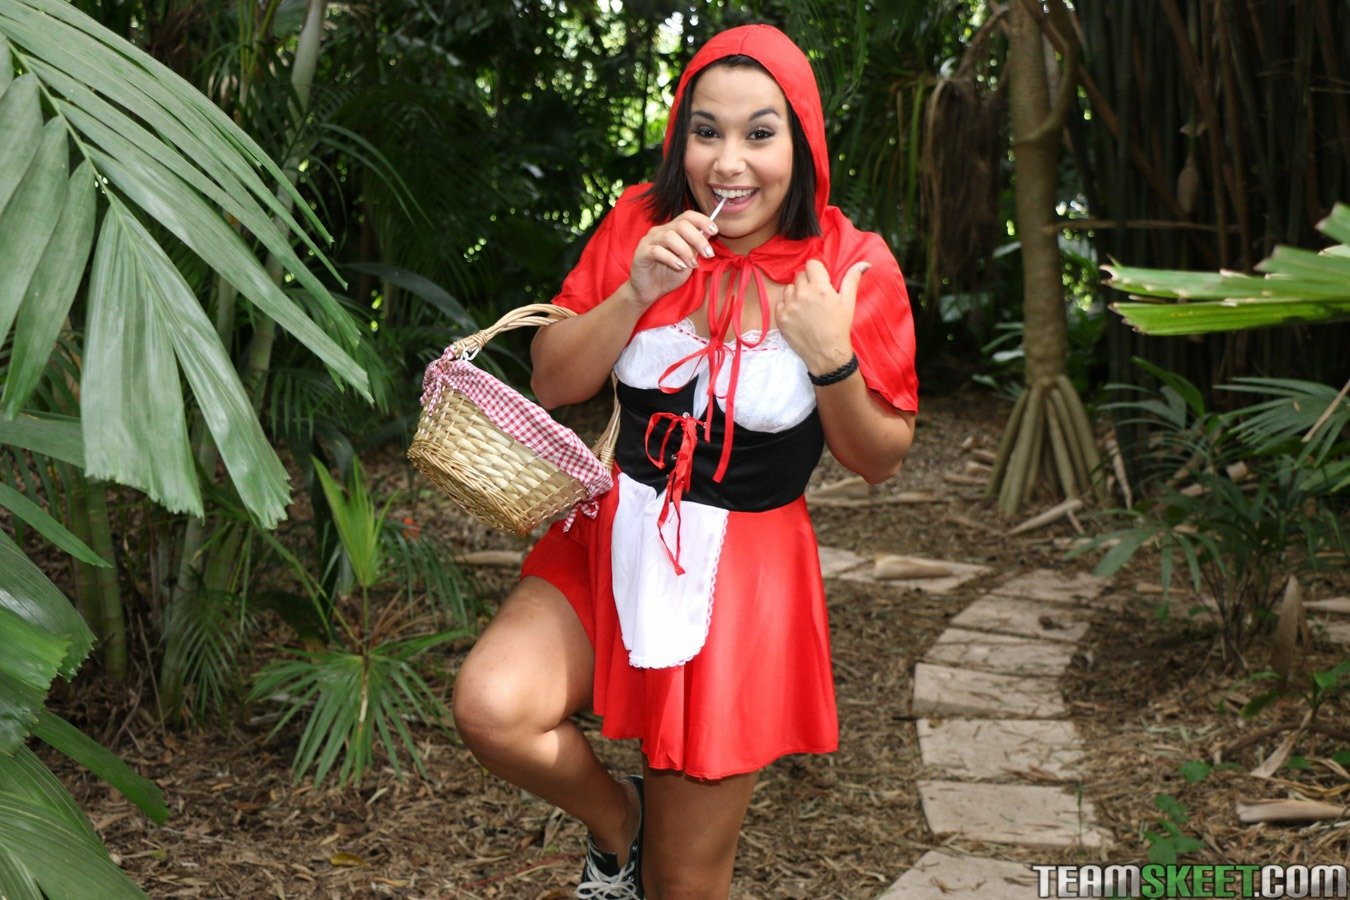 red riding ho